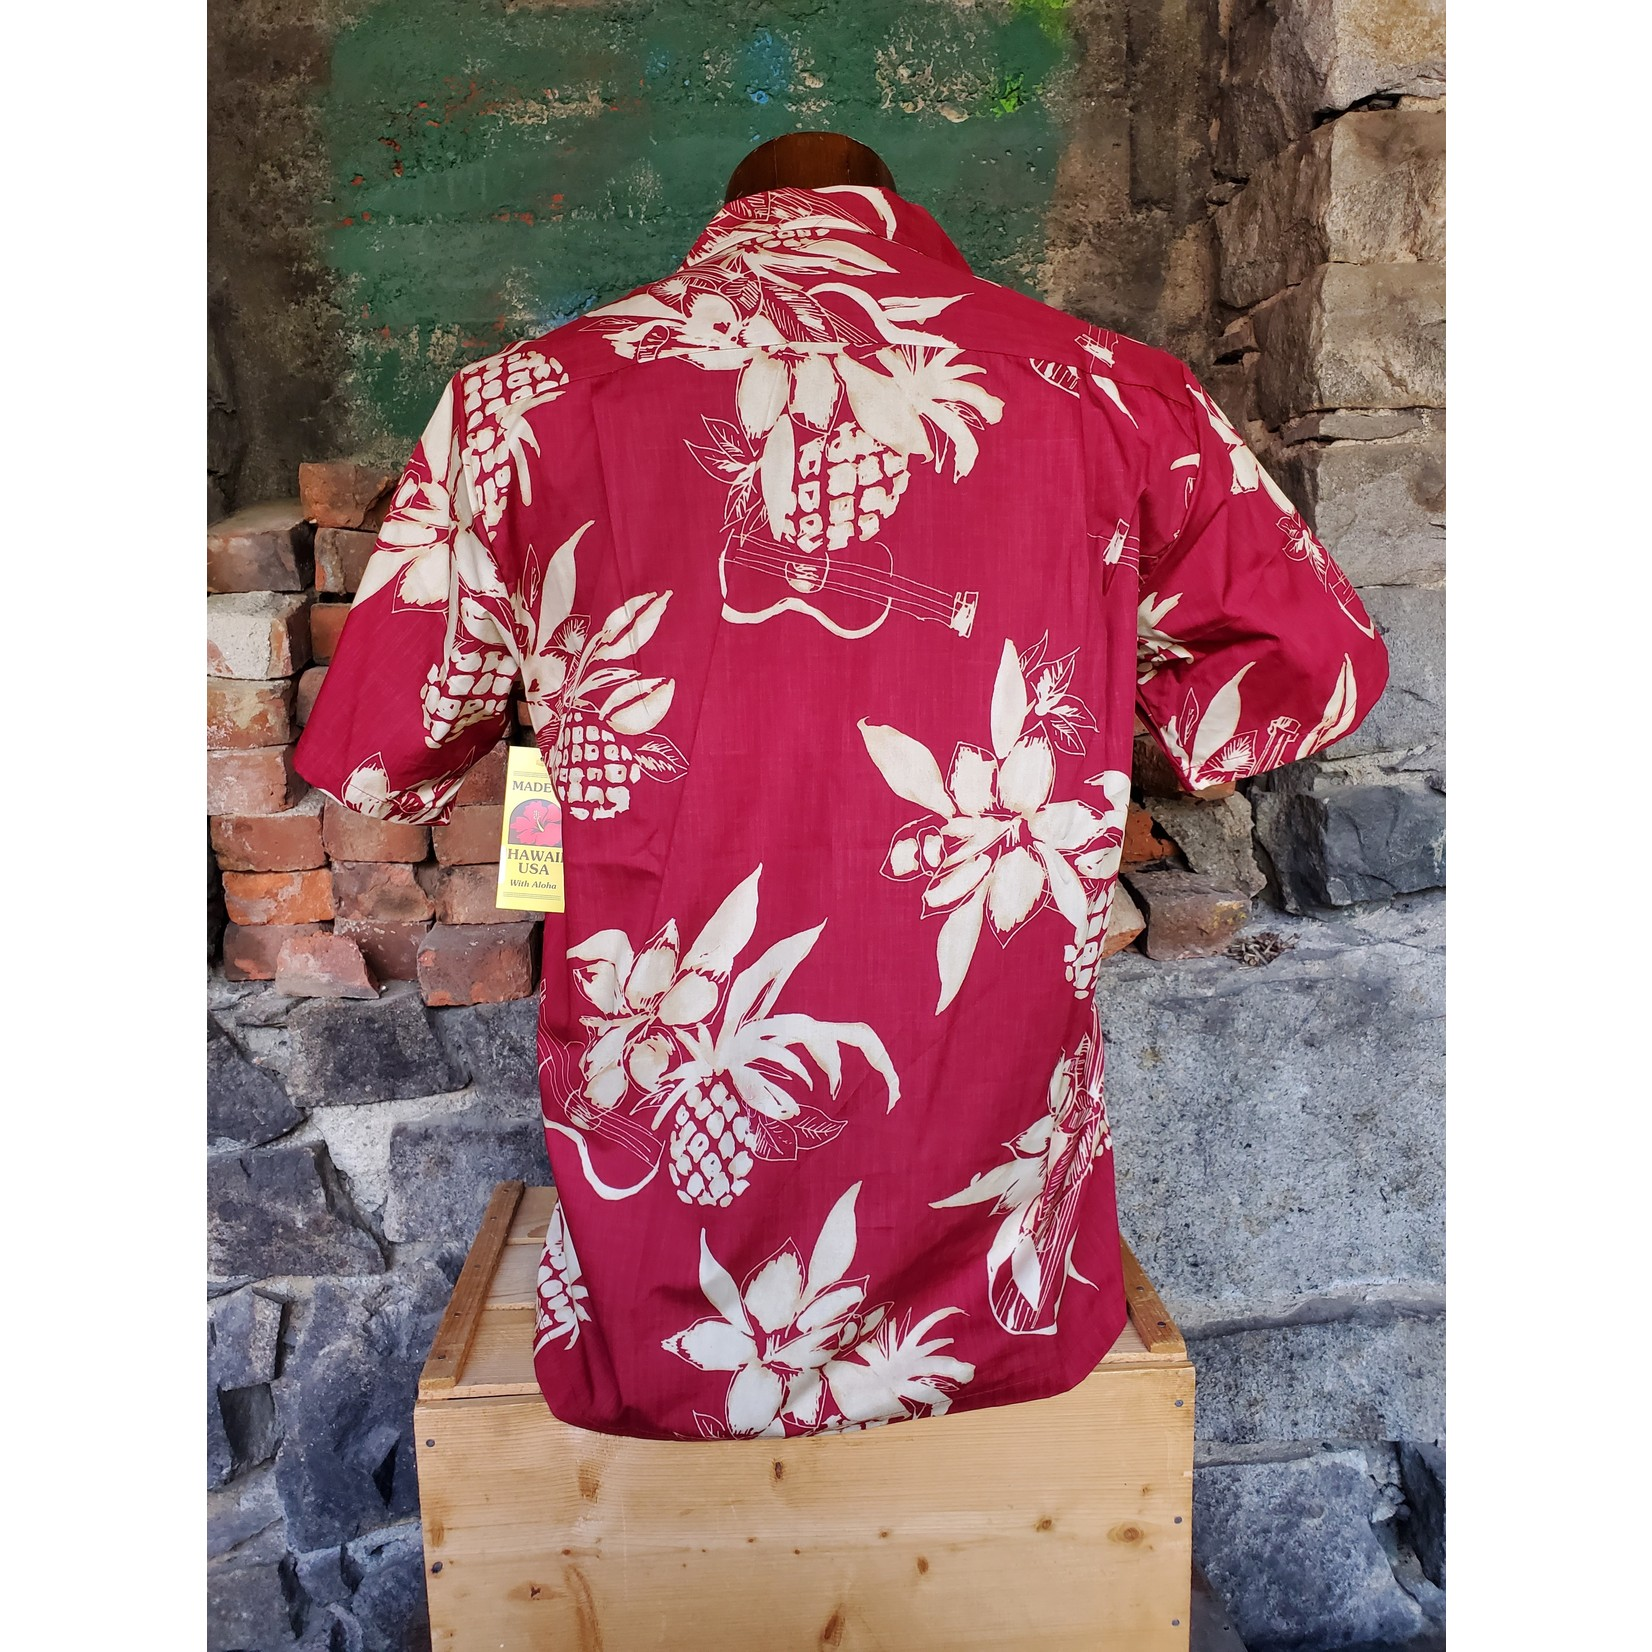 RJC Authentic Hawaiian Shirt - Red & Beige Floral